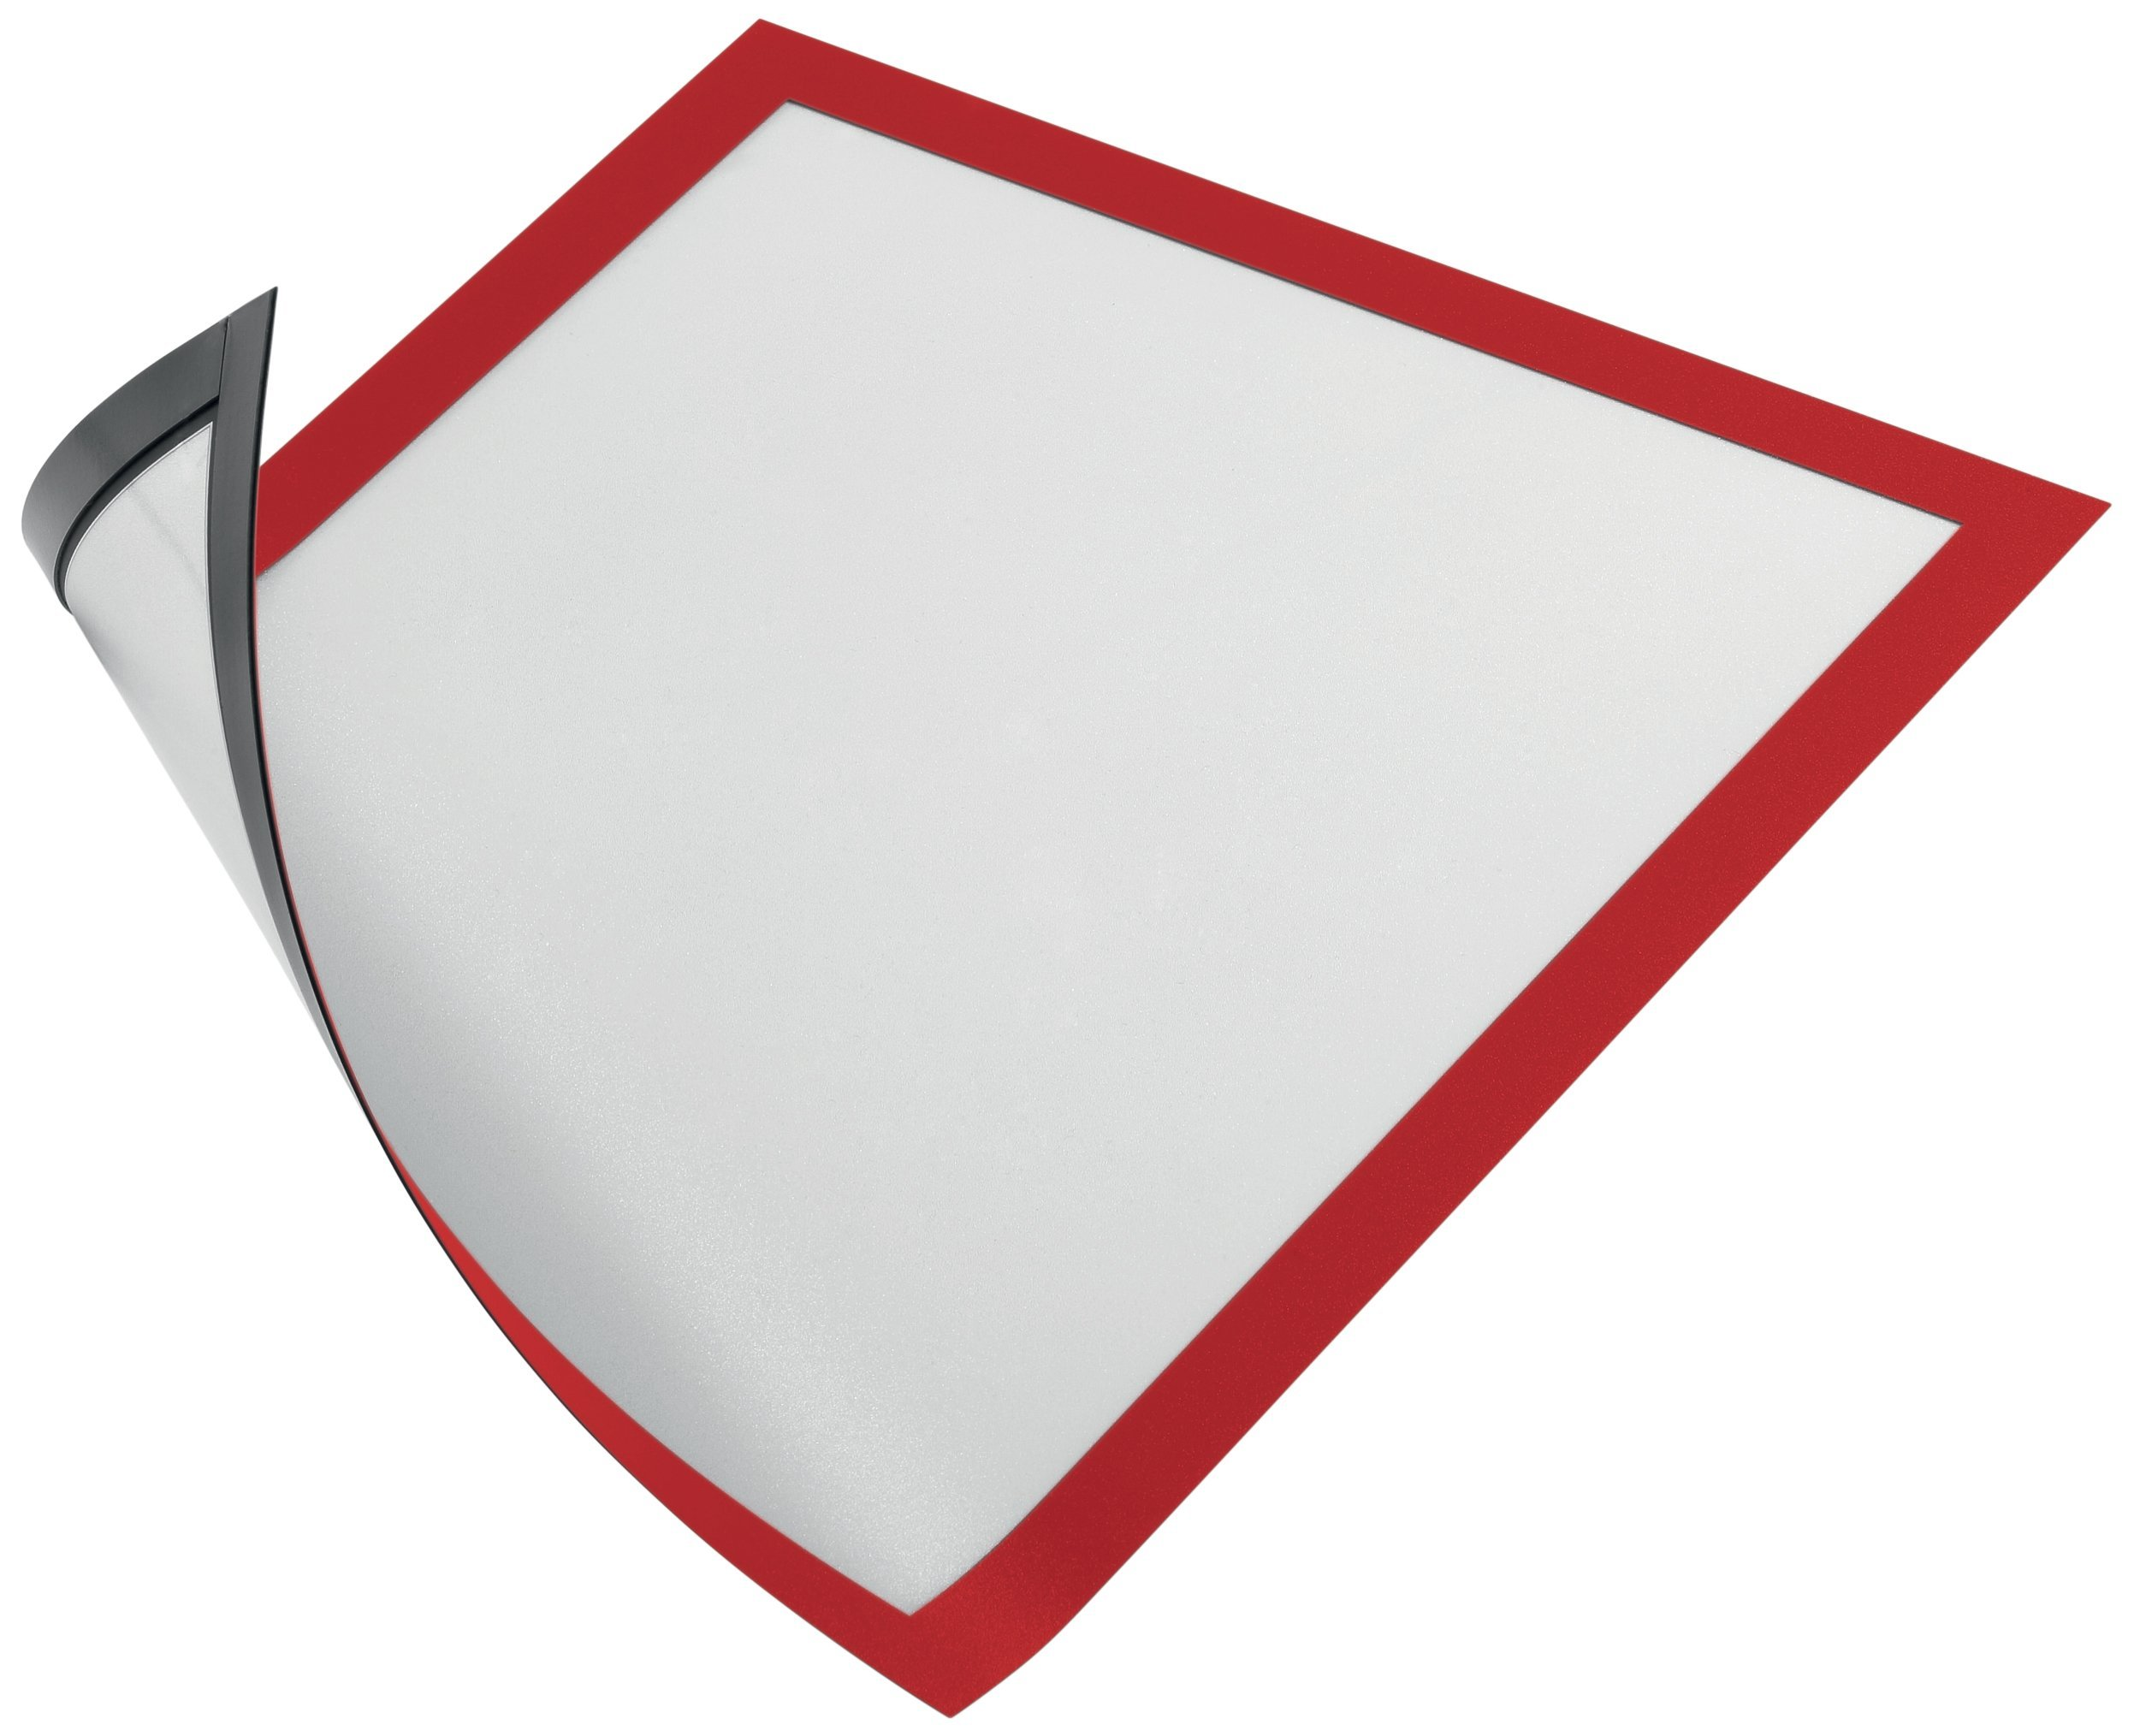 Durable DURAFRAME Magnetic Frame, A4 Size - Red, Pack of 5;Duraframe by Durable